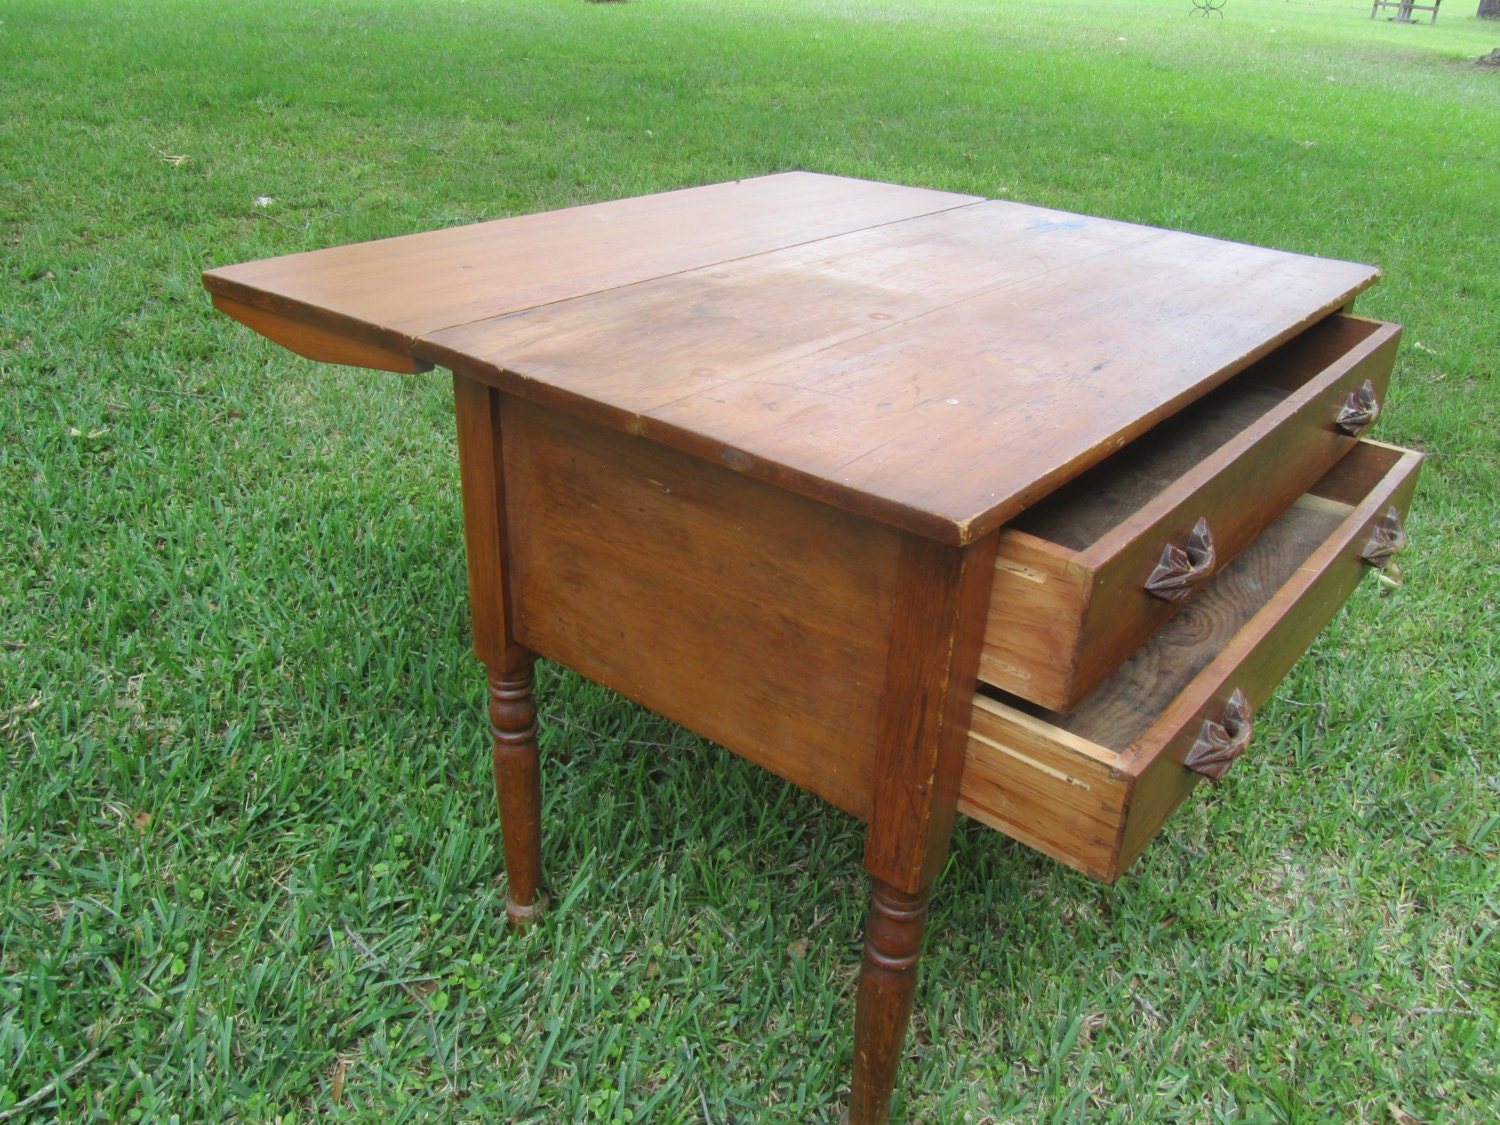 Antique drop leaf table and drawers wood furniture farm